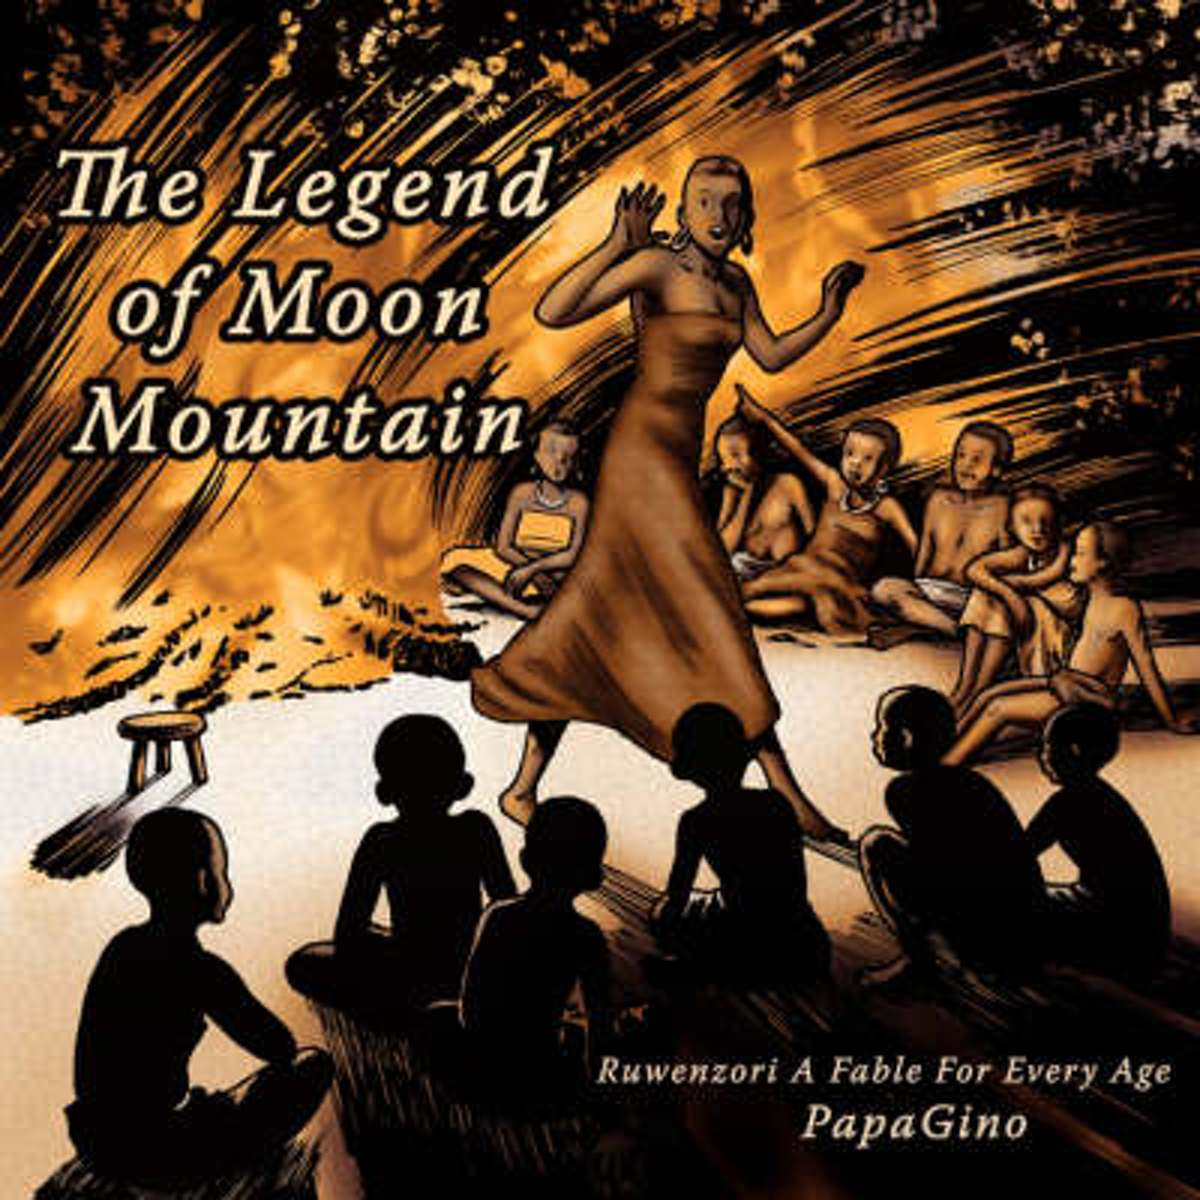 The Legend of Moon Mountain